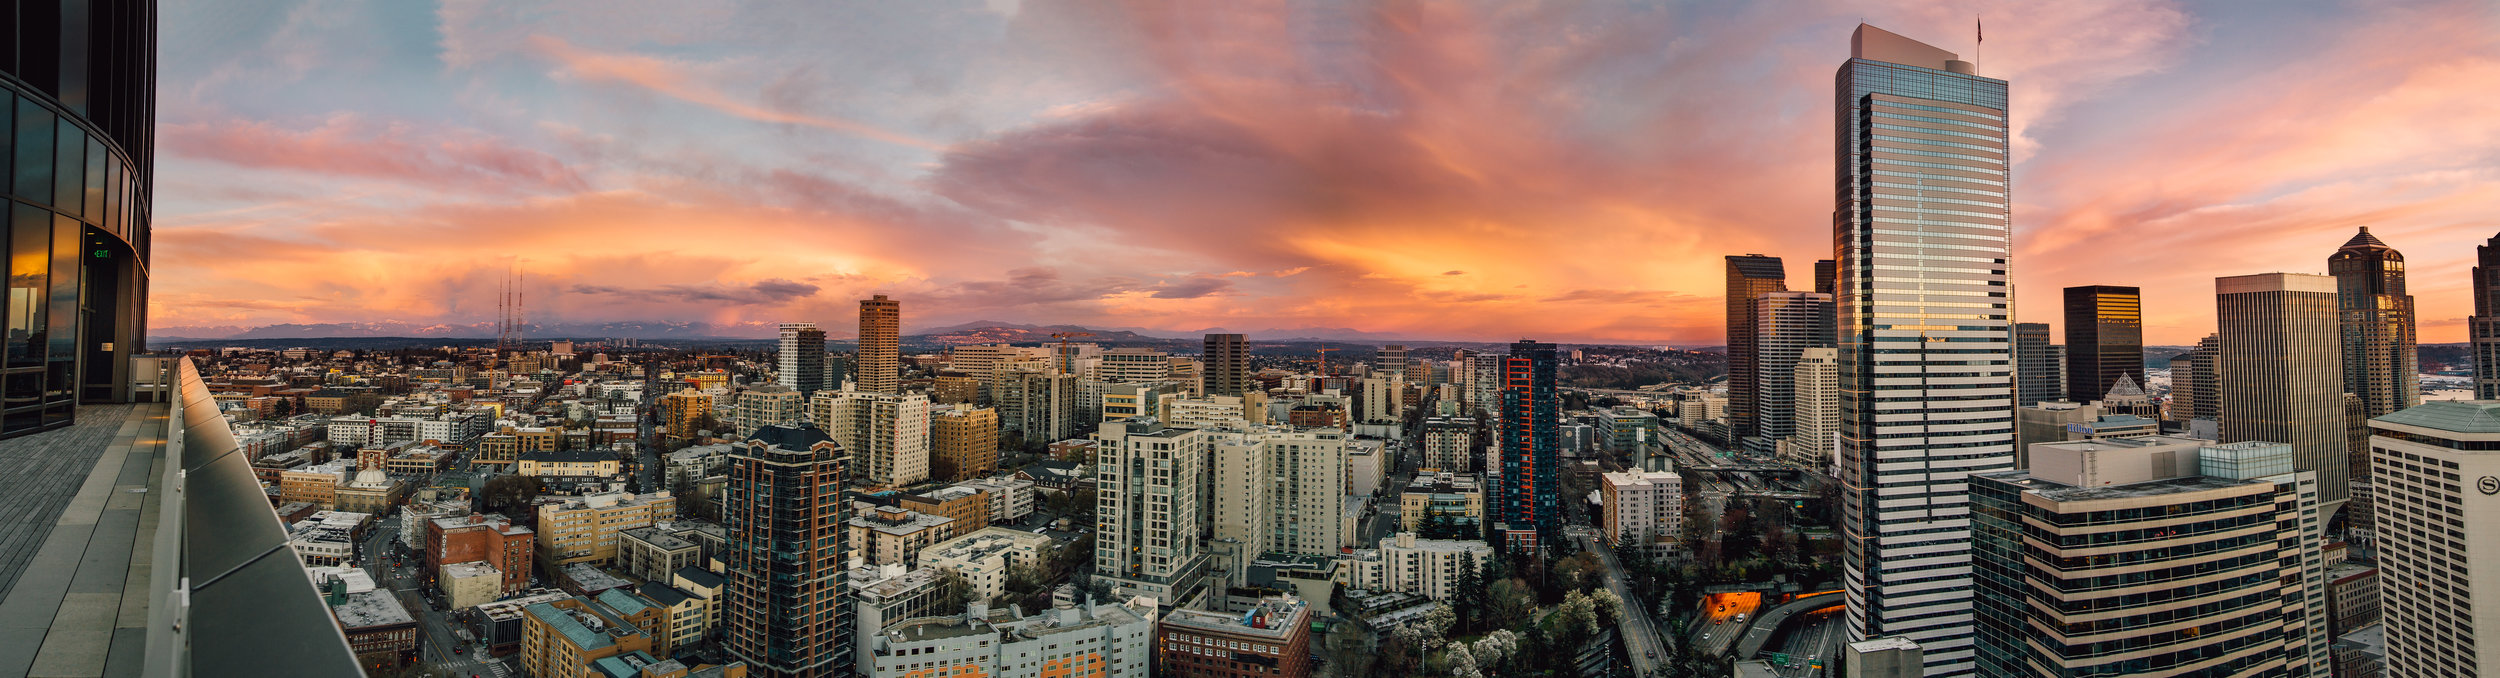 panorama+seattle-1.jpg